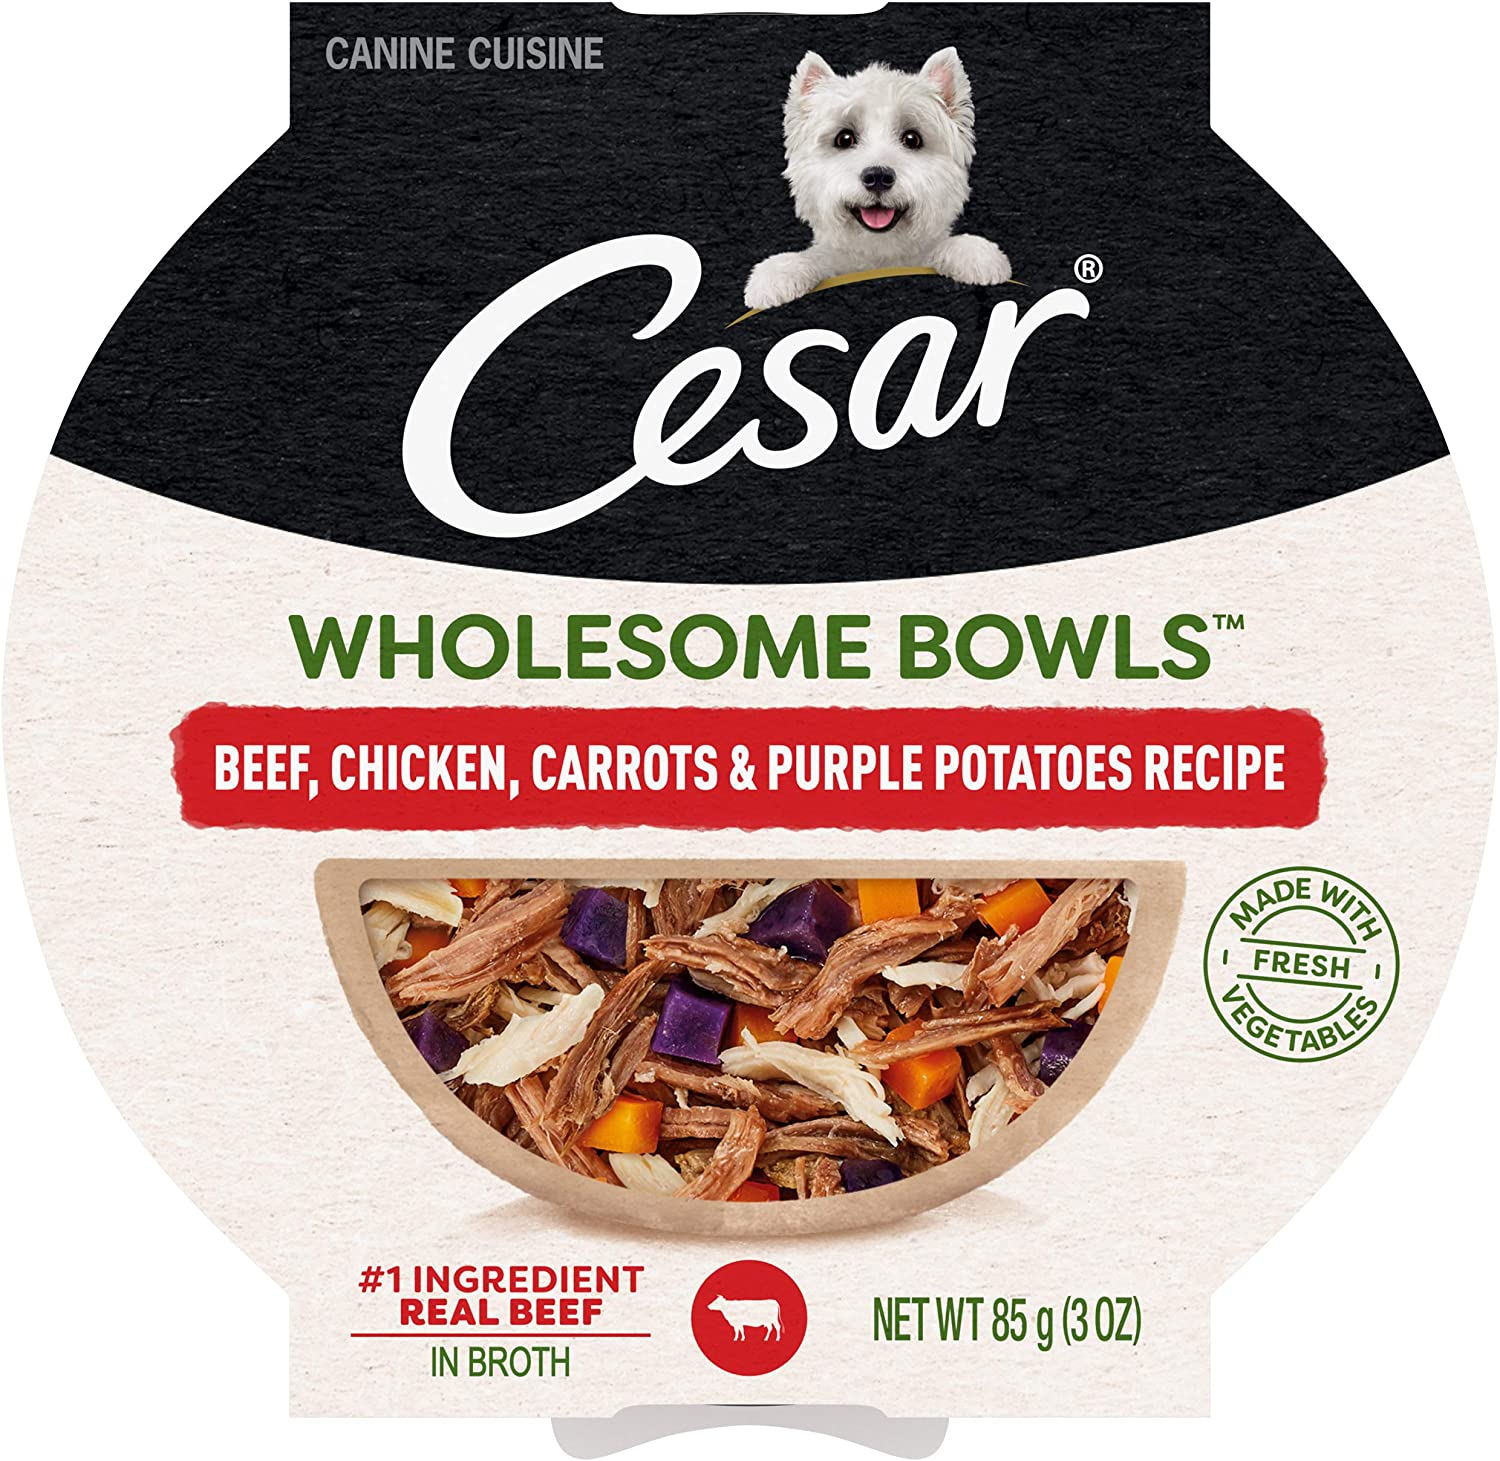 CESAR WHOLESOME BOWLS Adult Soft Wet Dog Food Beef, Chicken, Purple Potatoes & Carrots Recipe, (10) 3 oz. Bowls